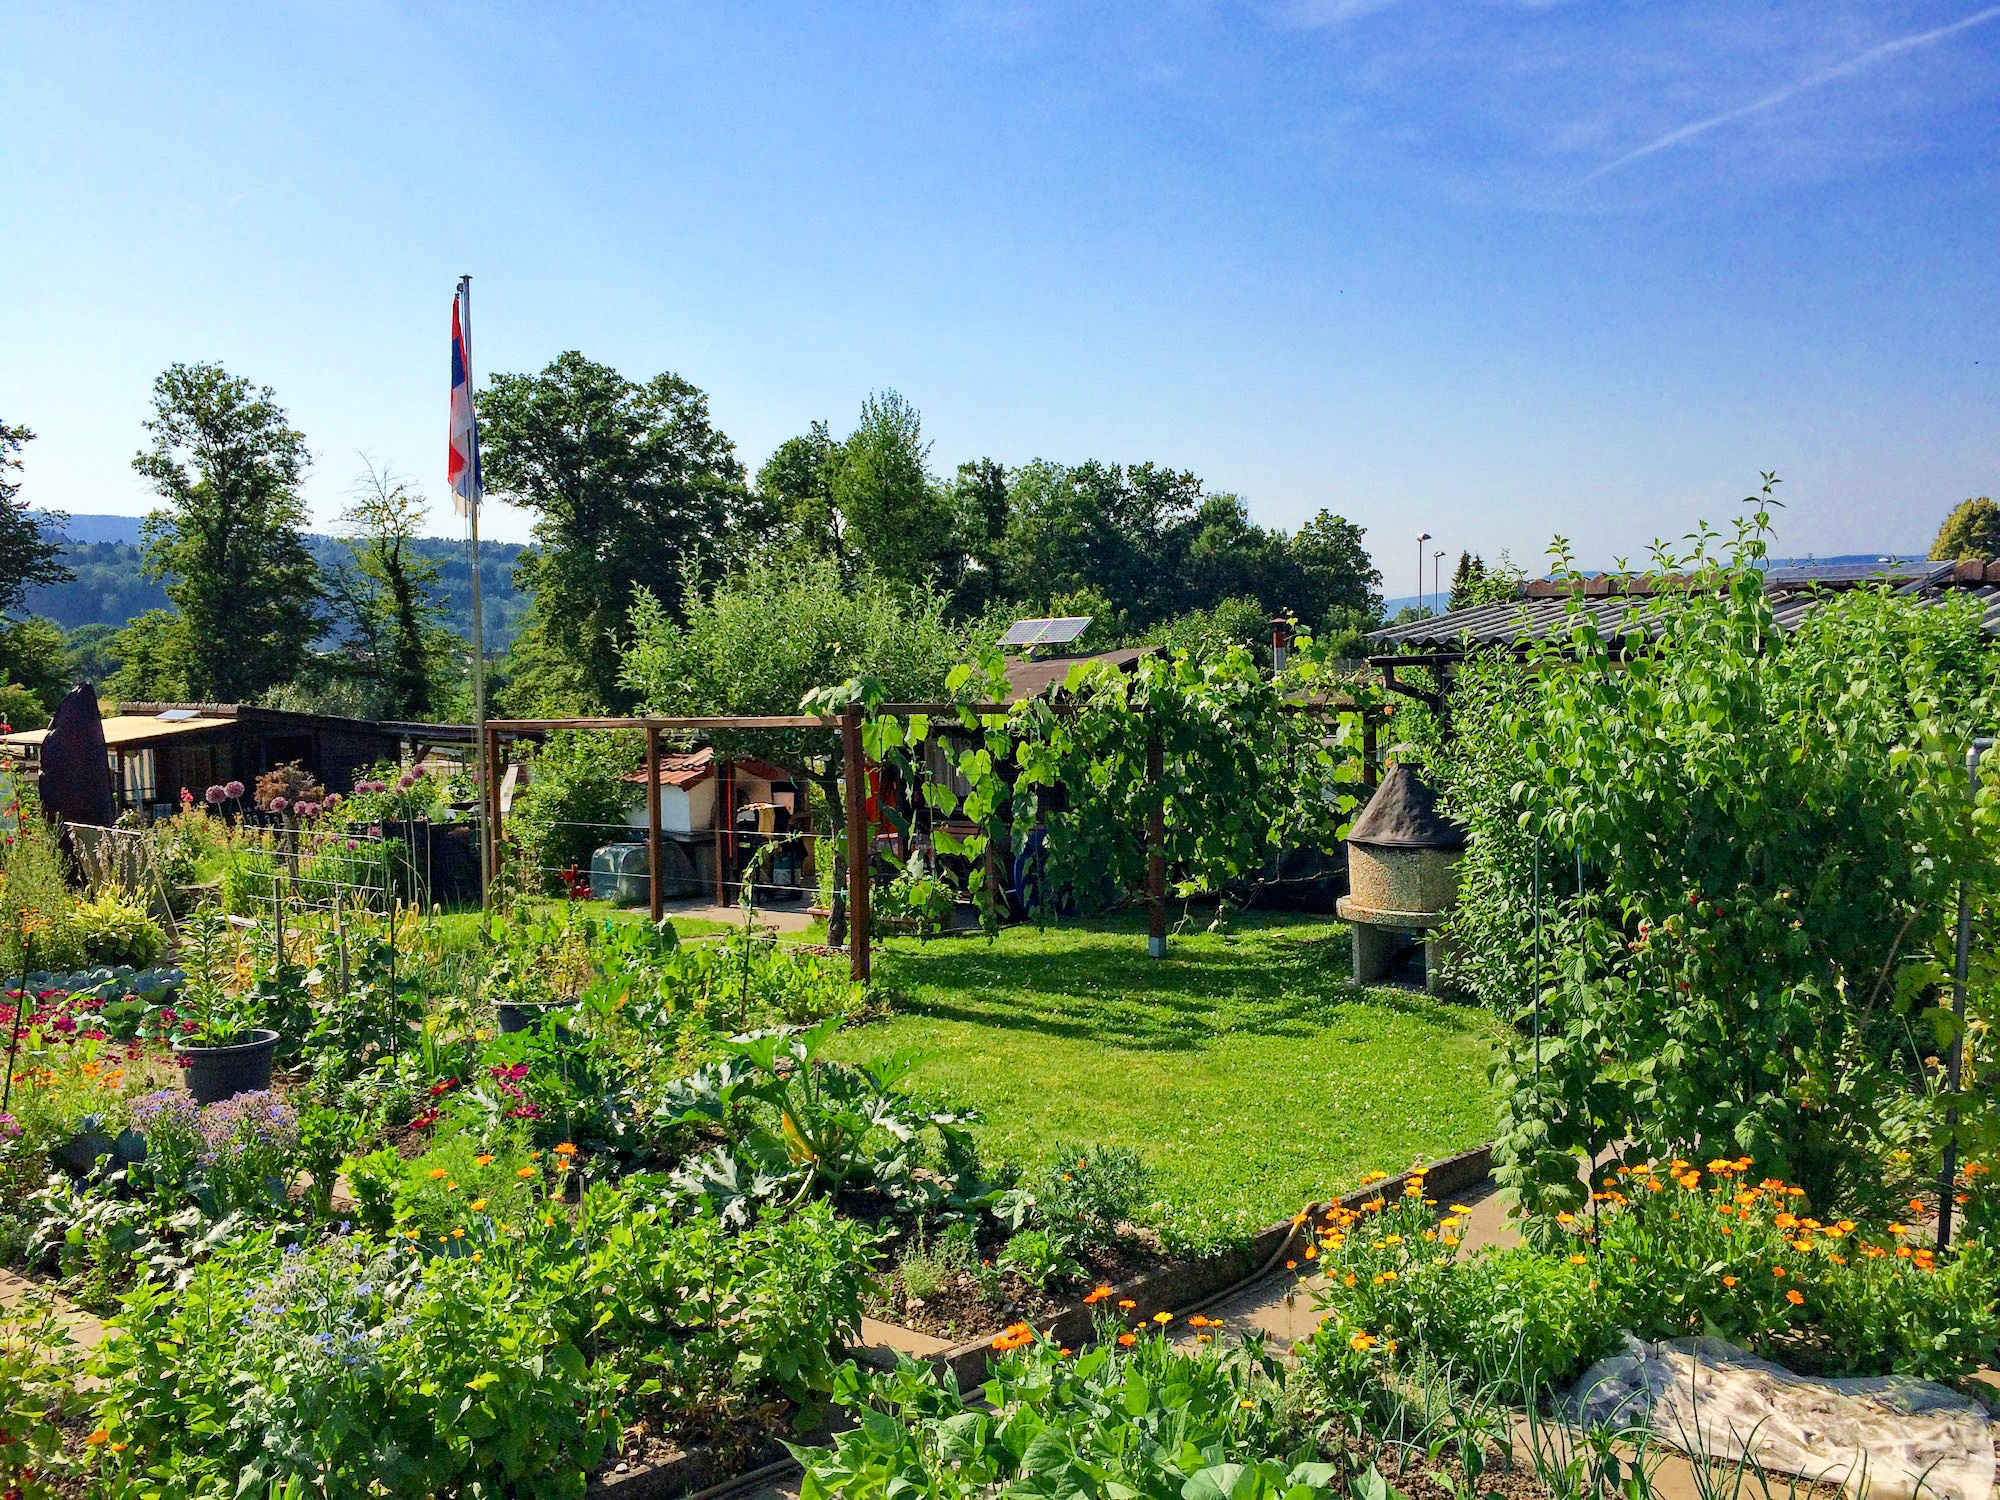 Psychological and health benefits from urban gardening